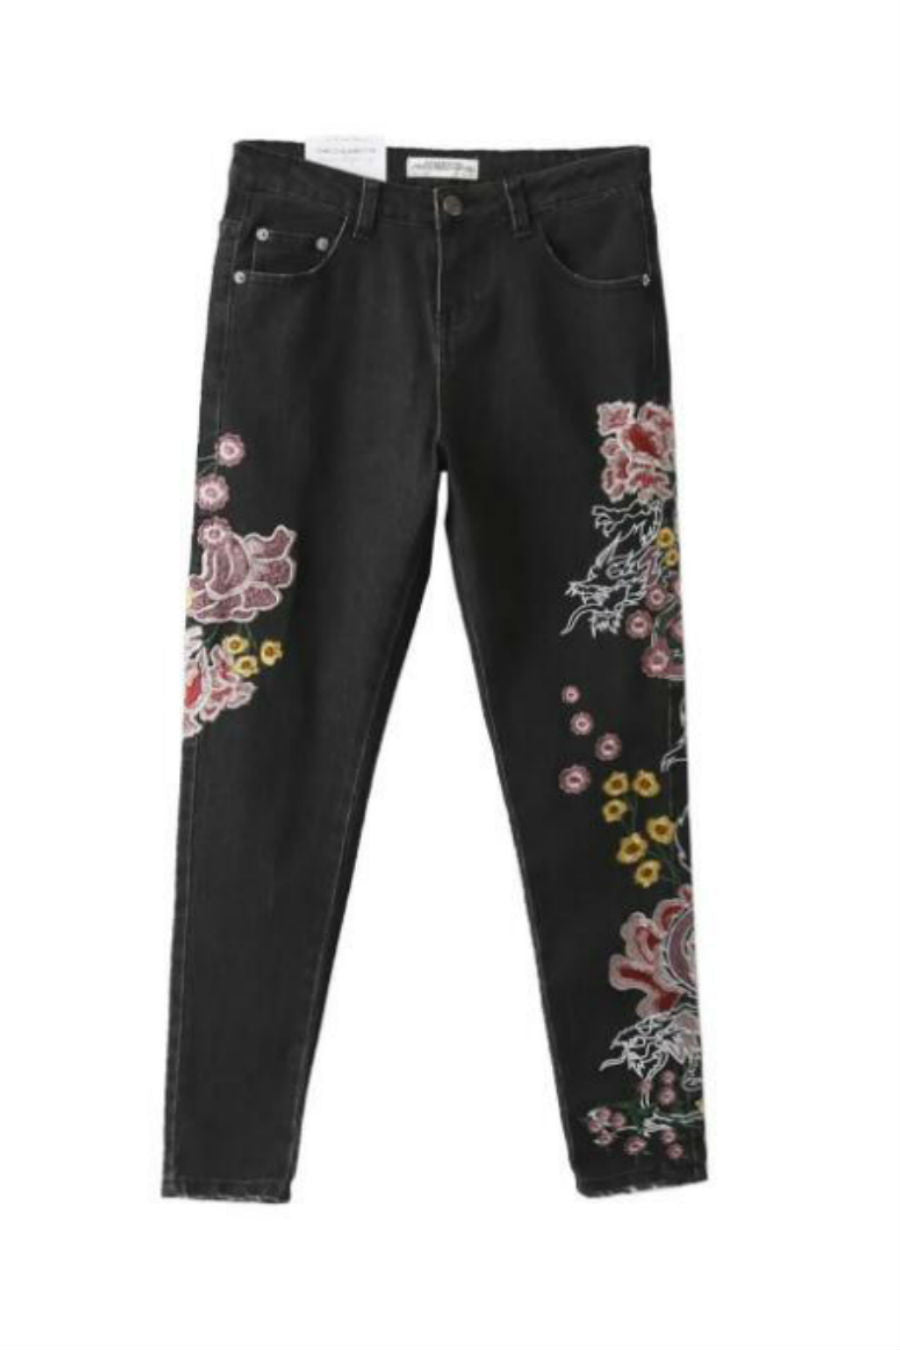 Black Floral Embroidery Jeans